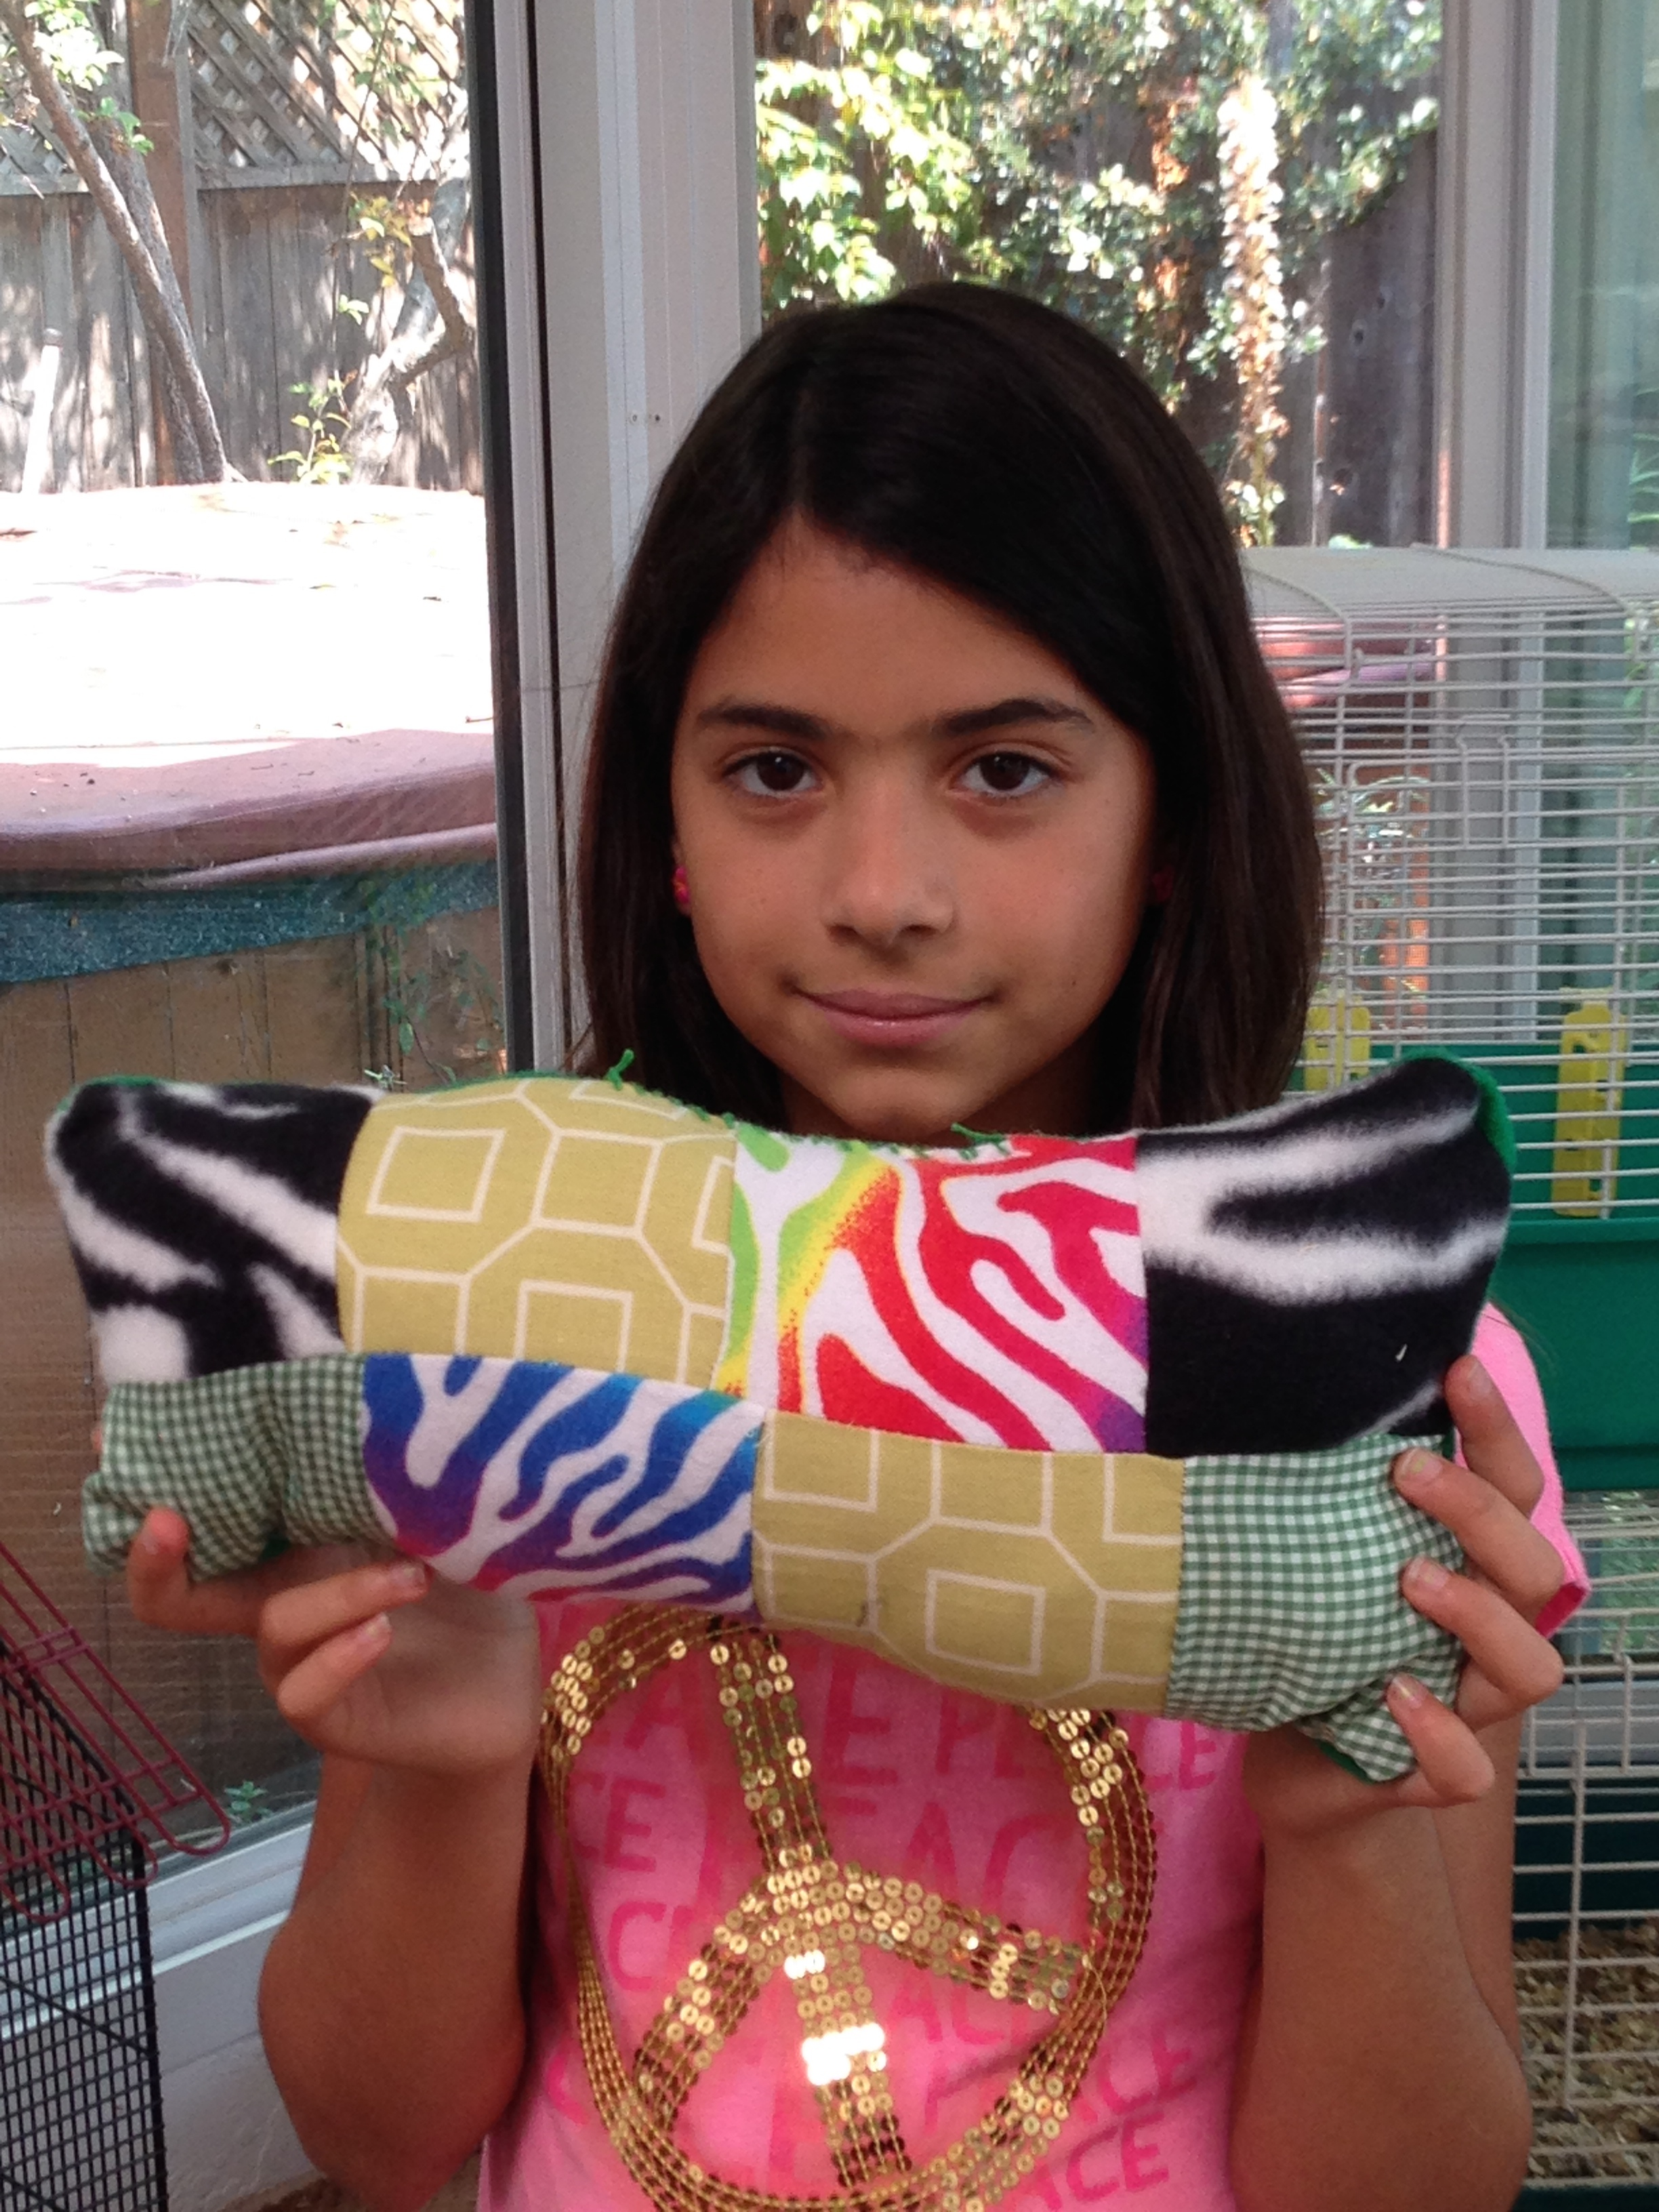 4th grader quilted pillow.